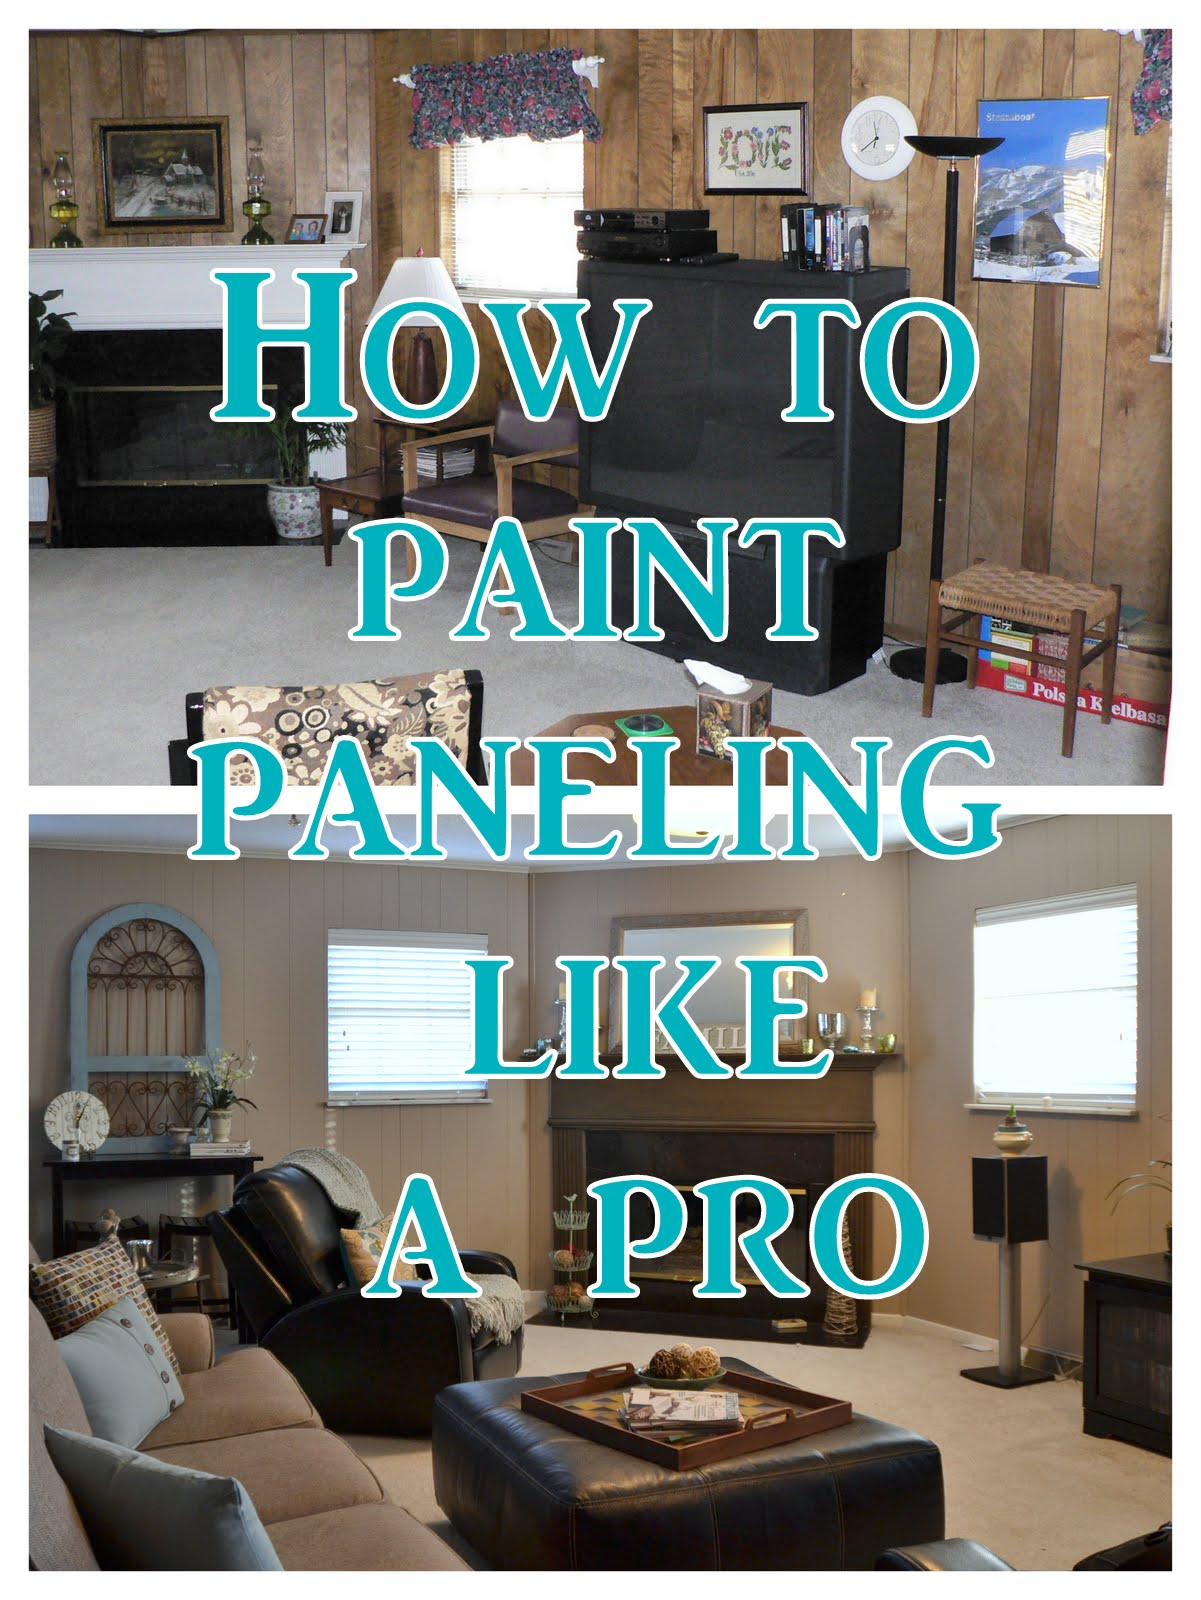 Tutorial: How to Paint Paneling Like a Pro - Tutorial: How To Paint Paneling Like A Pro - Postcards From The Ridge